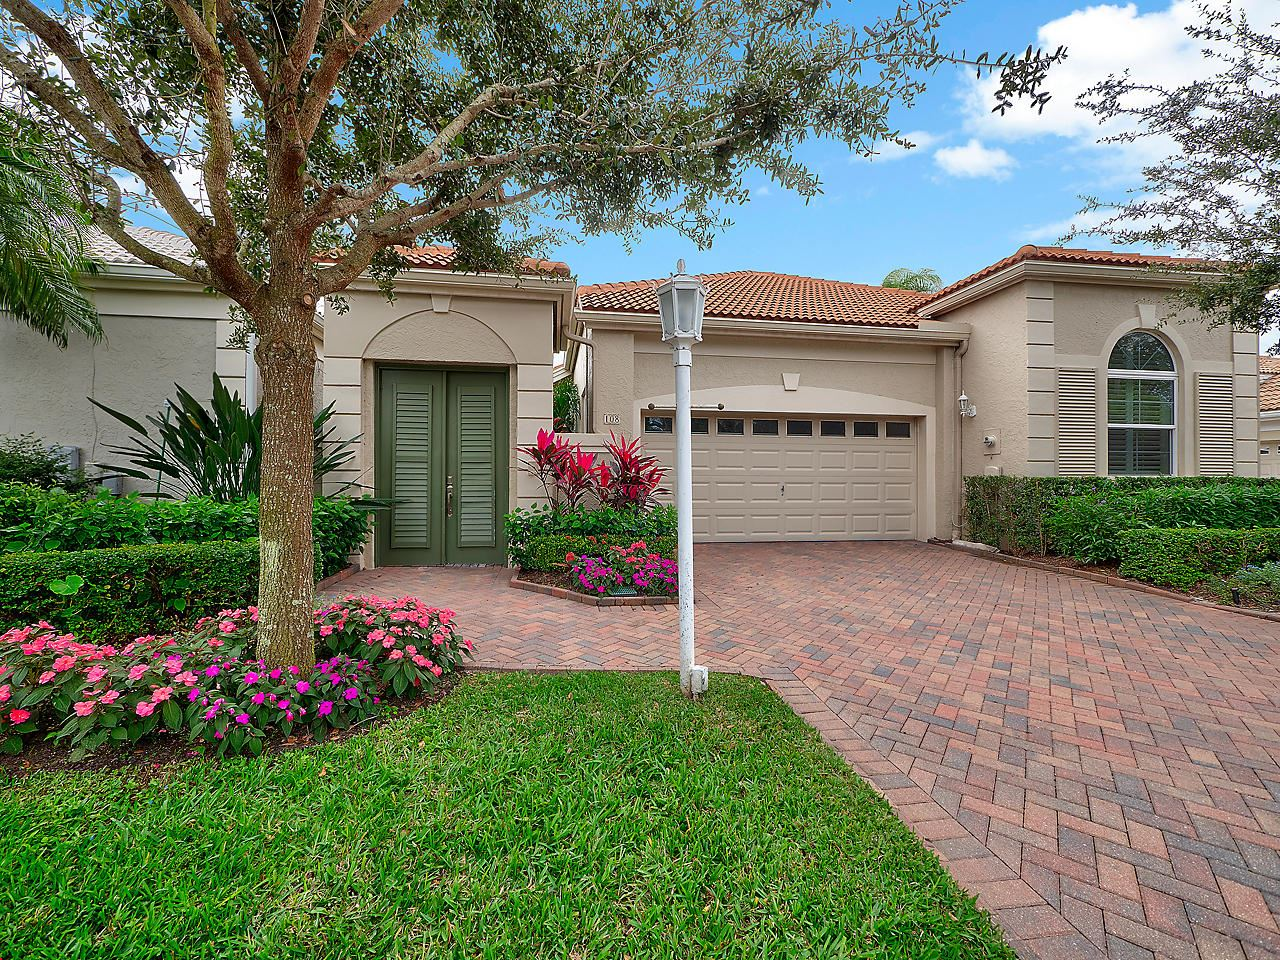 Photo of 108 Coral Cay Drive, Palm Beach Gardens, FL 33418 (MLS # RX-10591212)